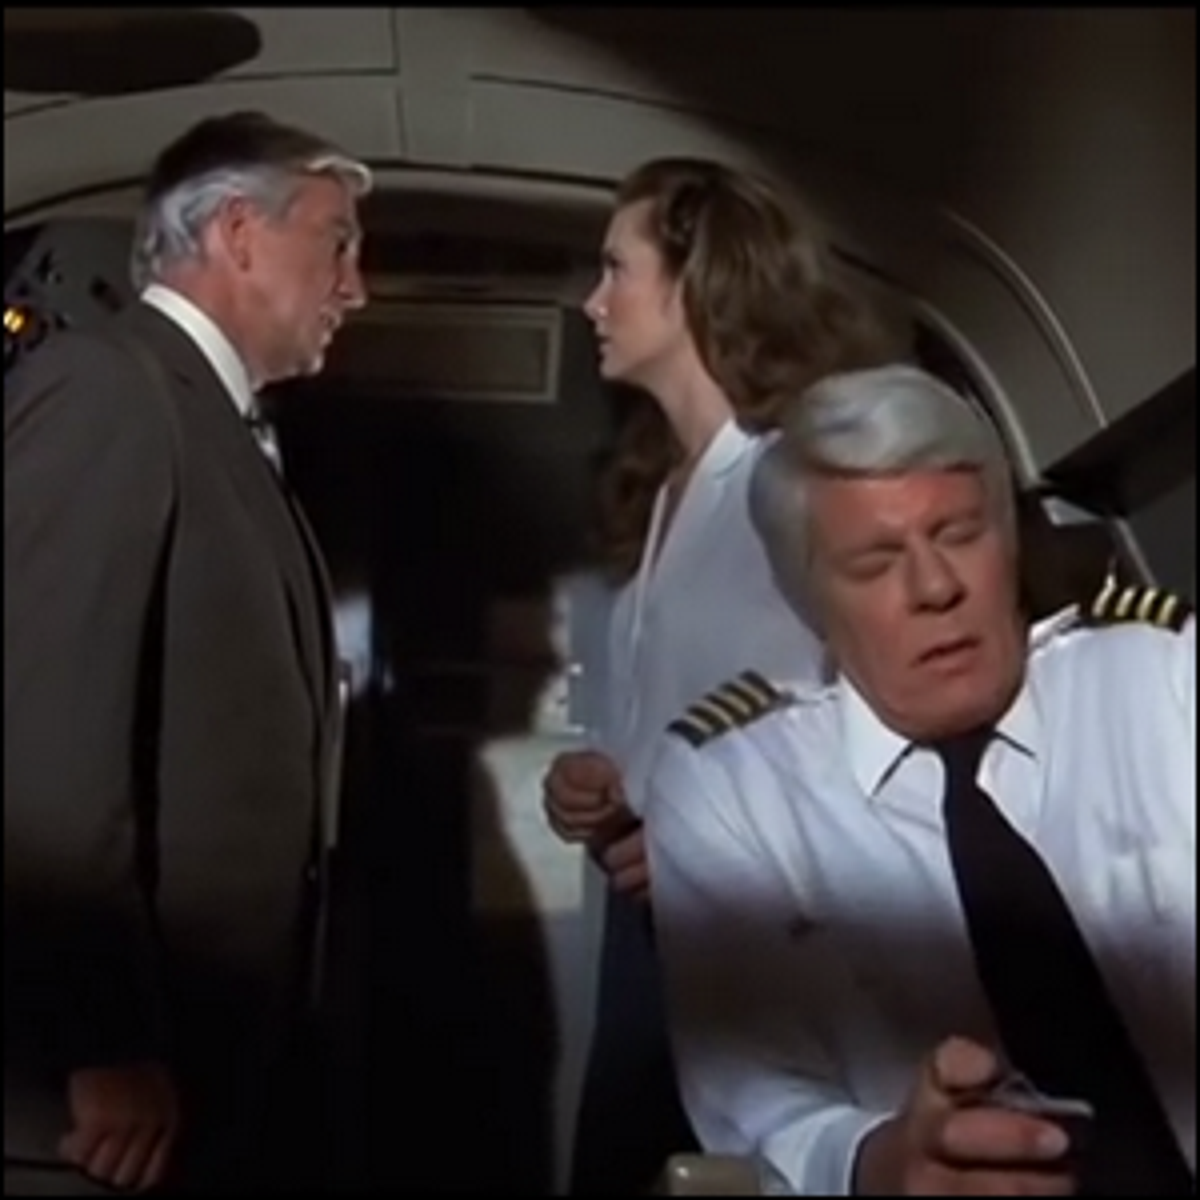 A scene from the 1980 movie Airplane! depicting one of the seriously ill pilots.